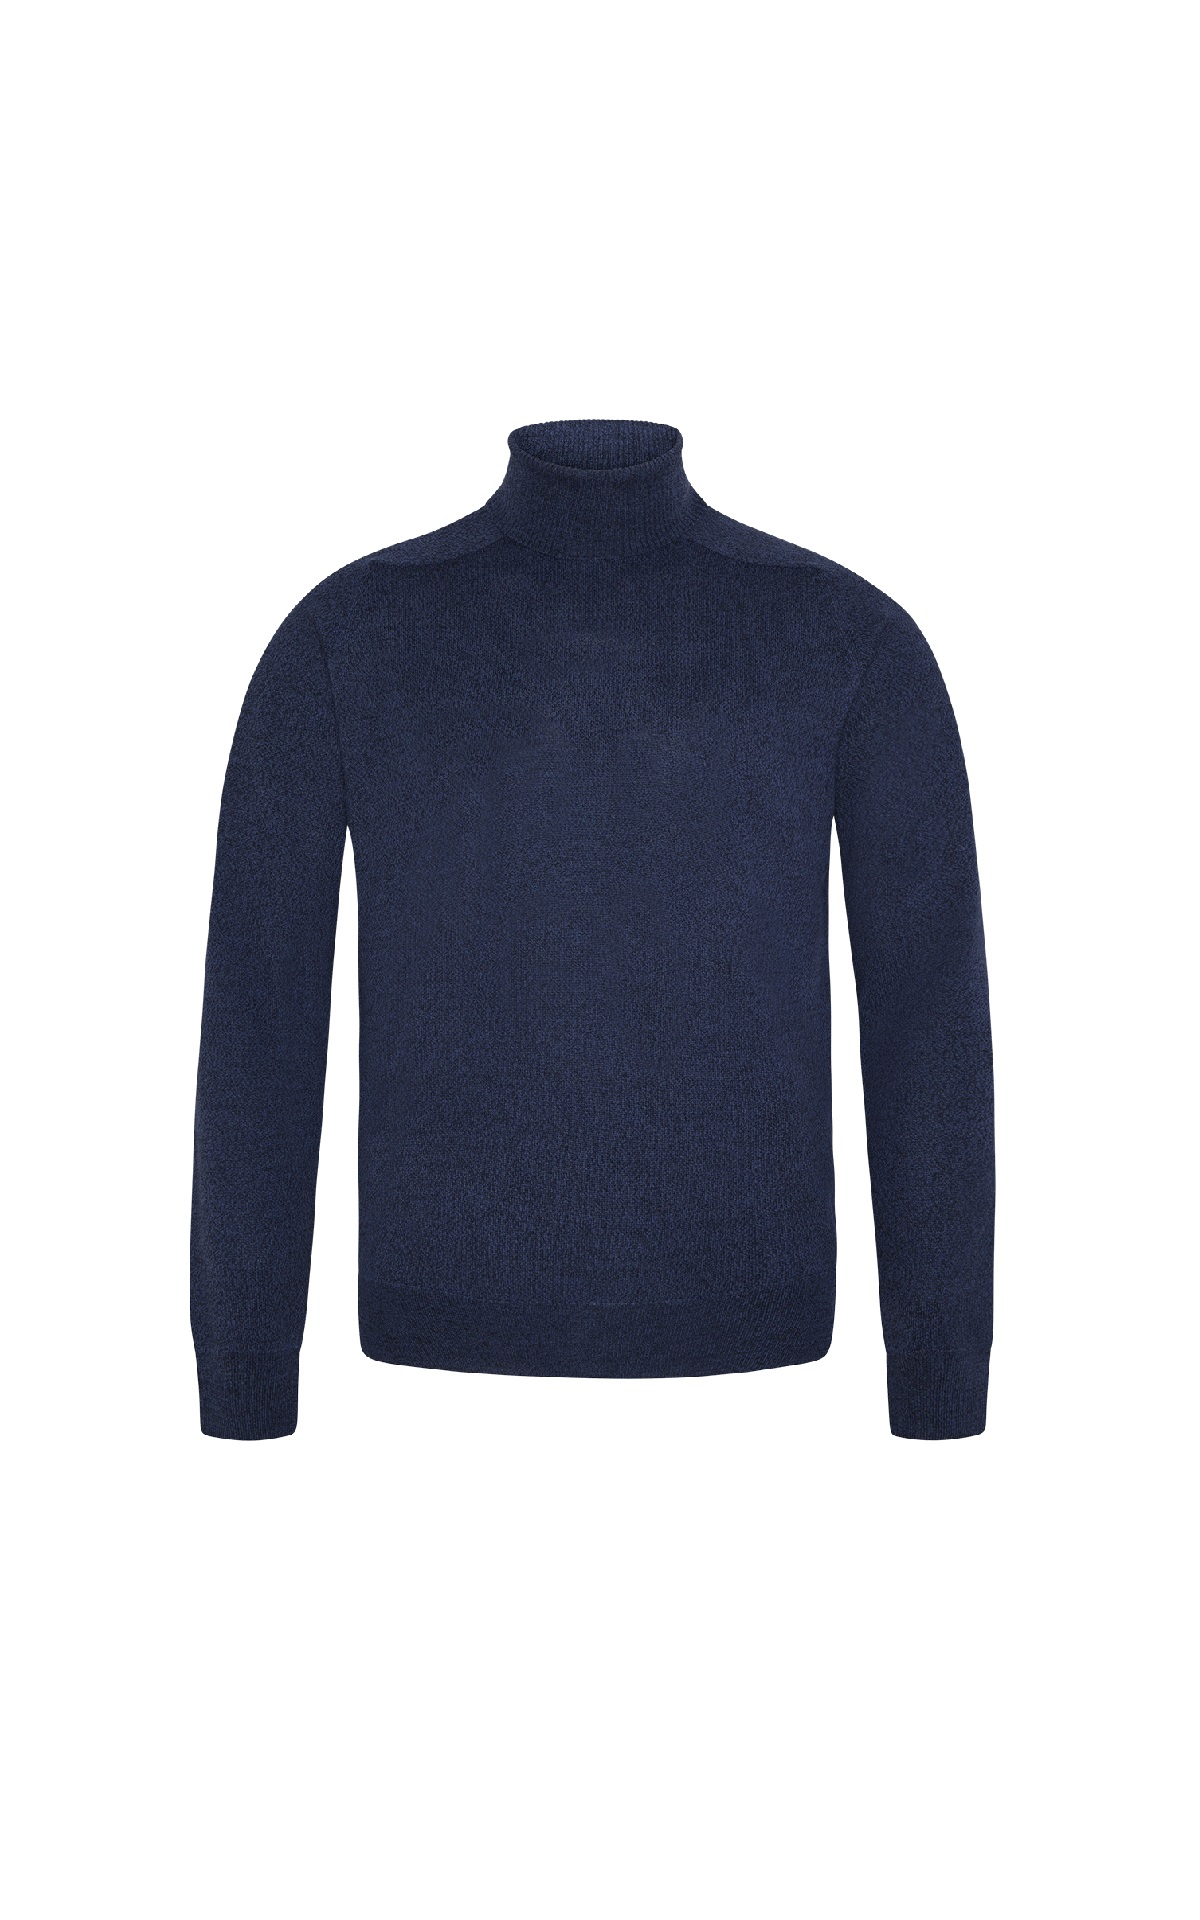 Navy blue turtleneck sweater Punto Blanco